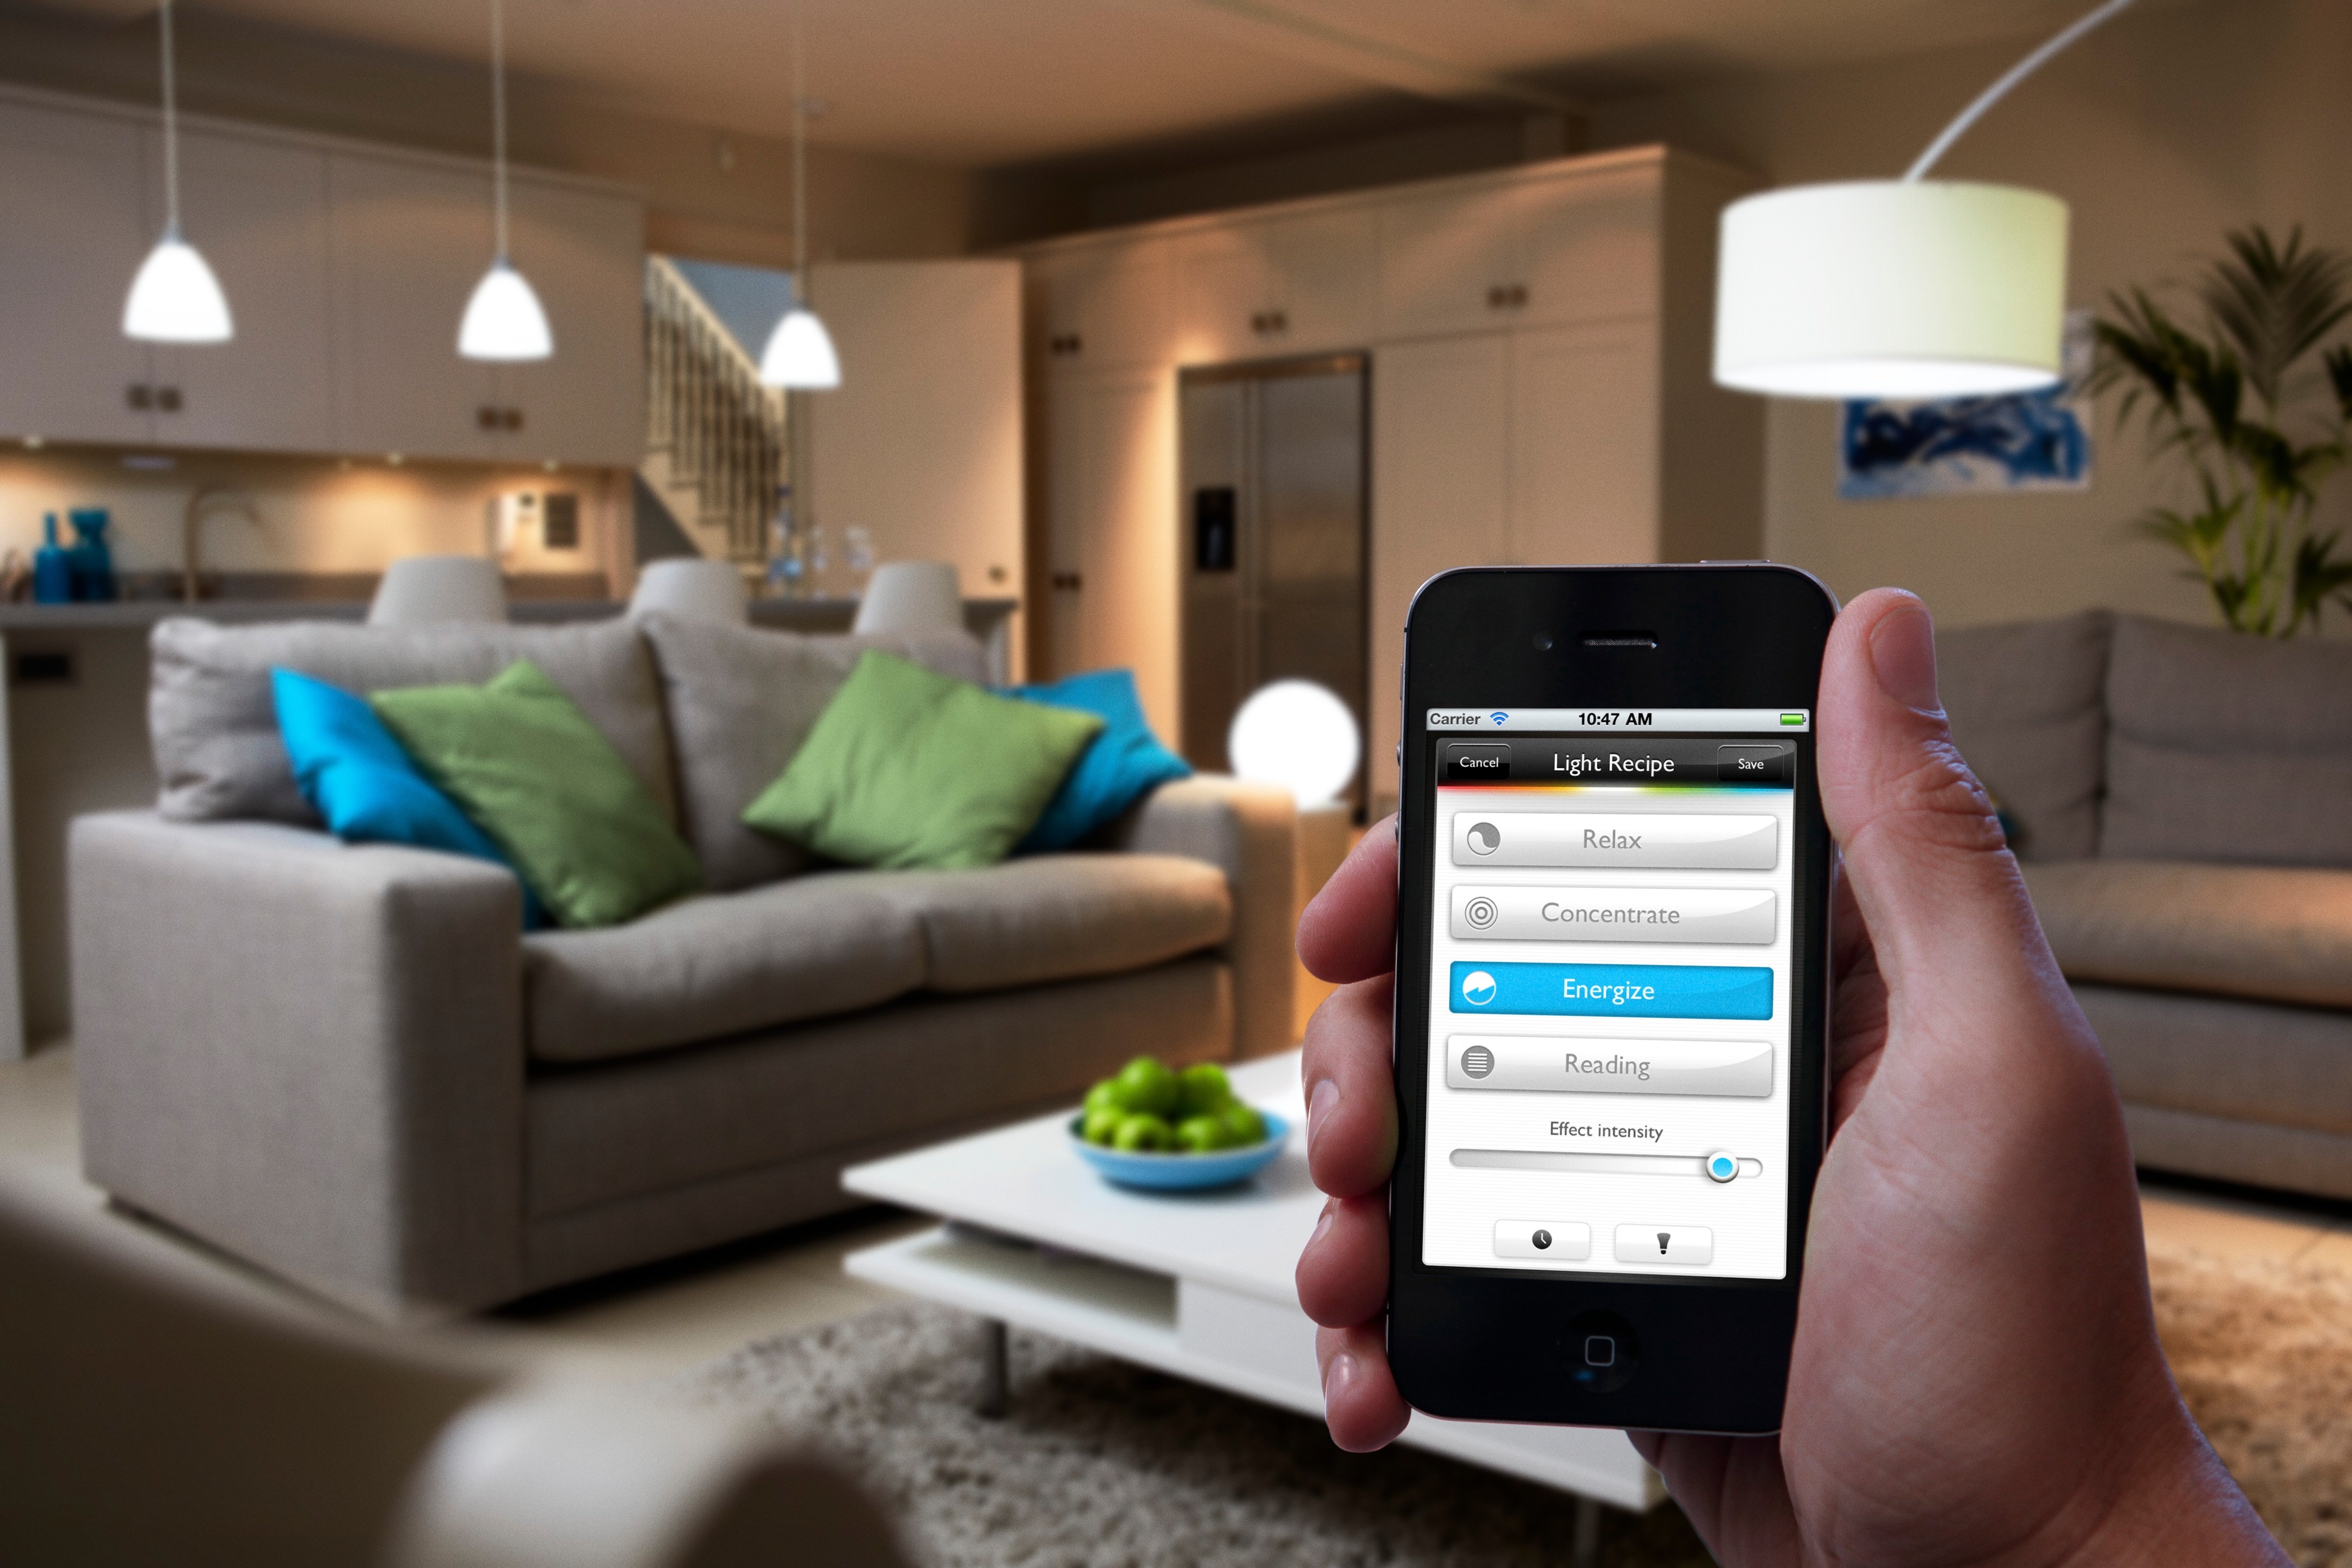 Introducing Philips hue: the world's smartest LED bulb, marking a